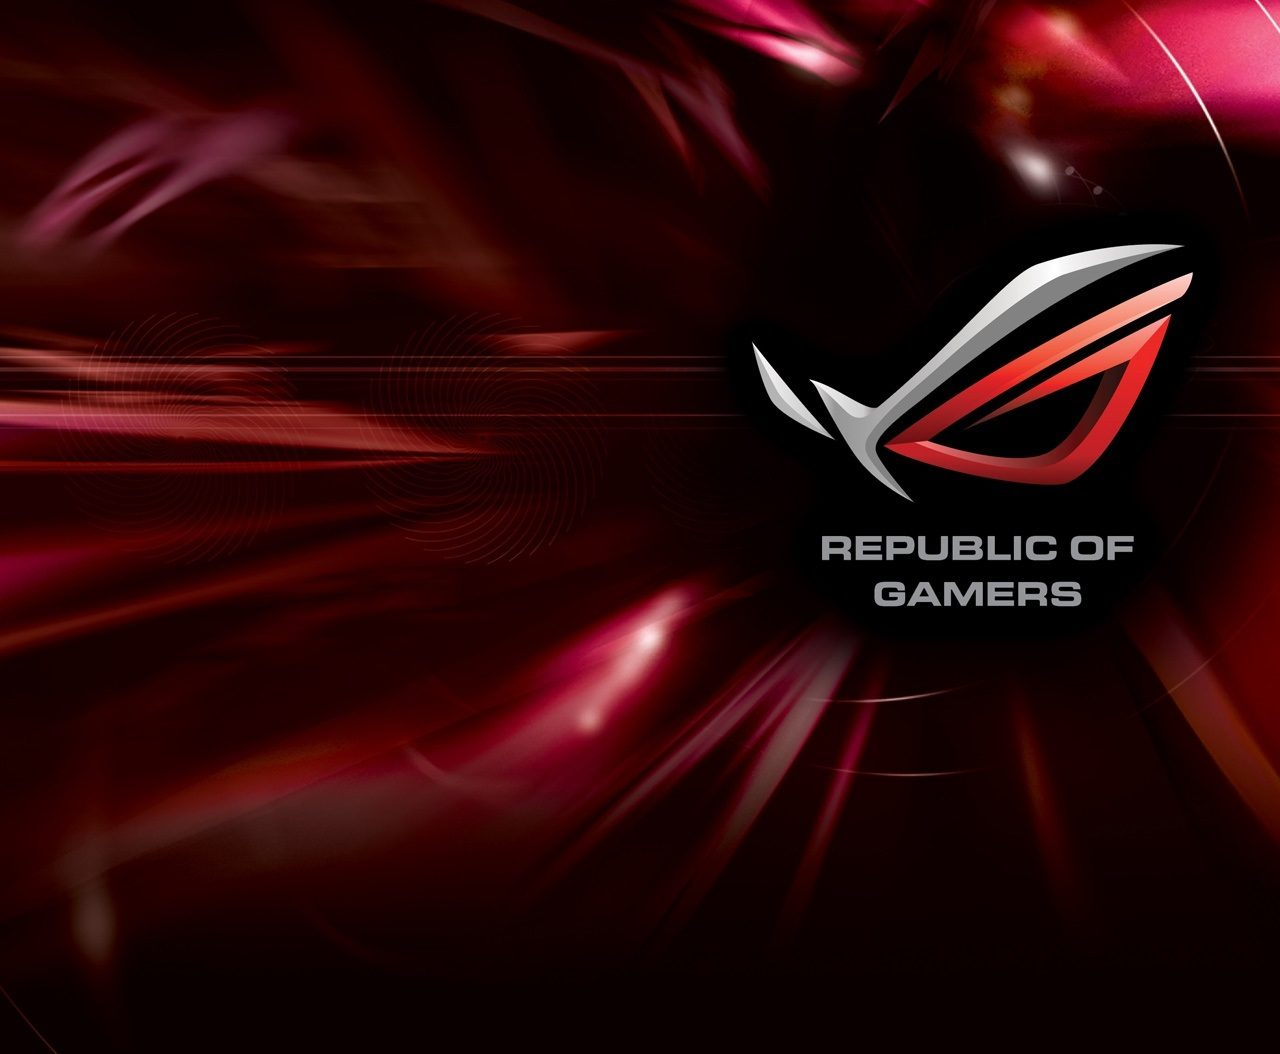 Asus Rog Hd Desktop Wallpaper Hd Wallpapers